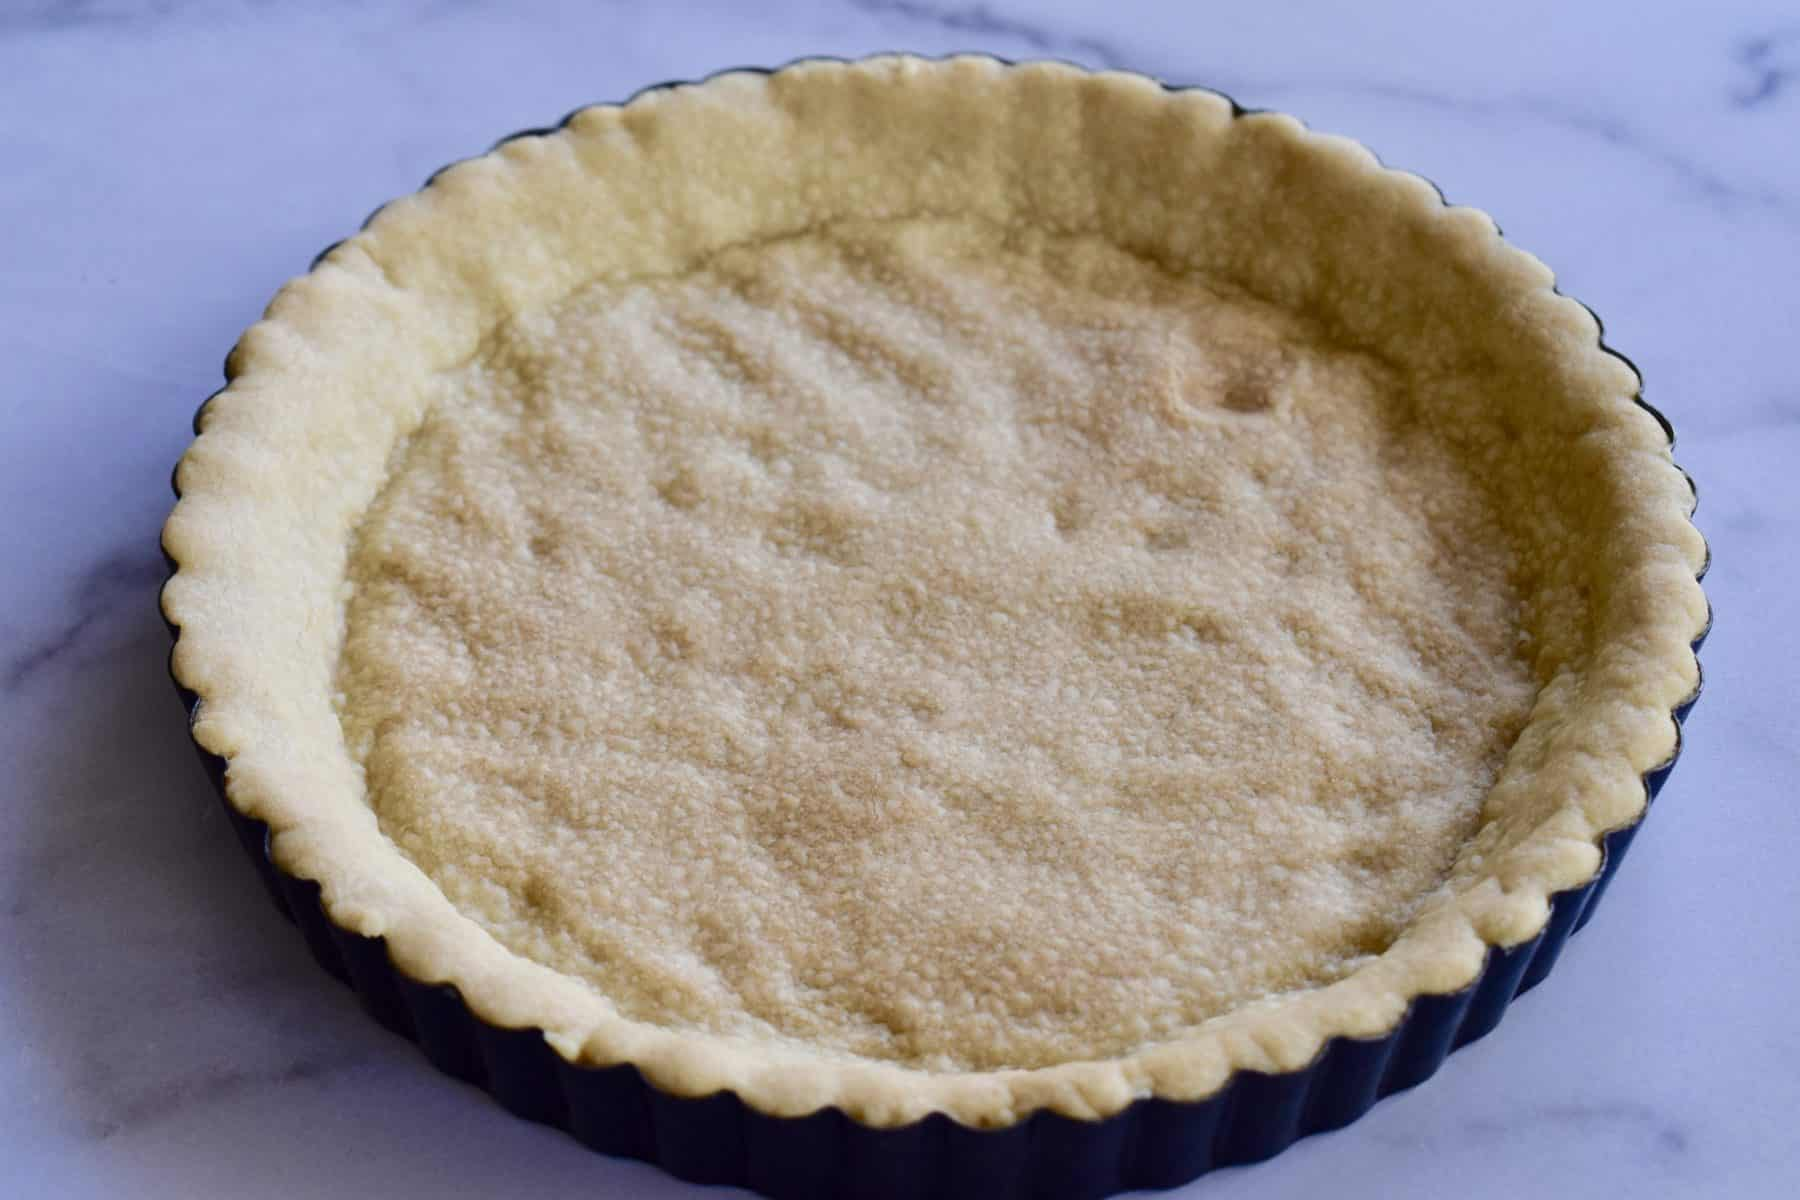 Baked olive oil crust.